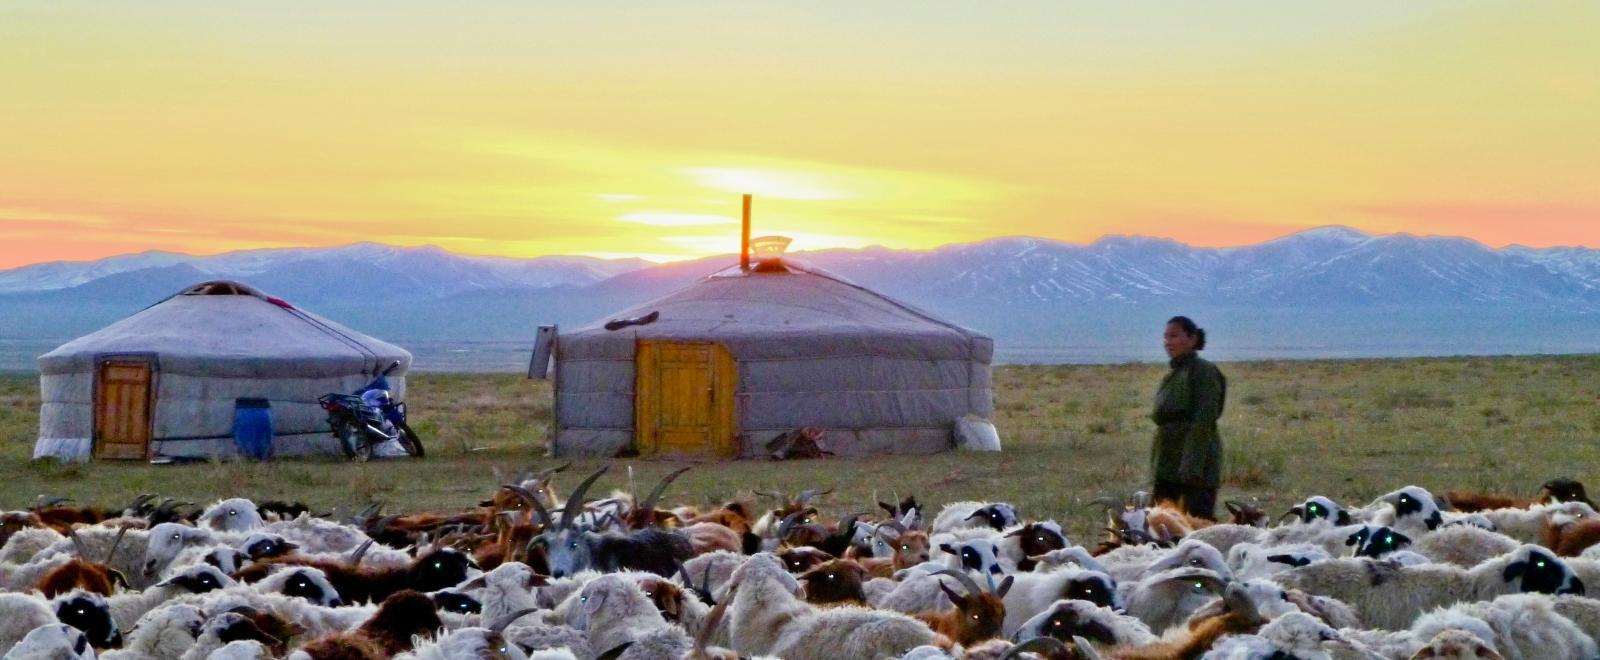 Cattle graze near a traditional ger while waiting for a Projects Abroad volunteer in Mongolia.